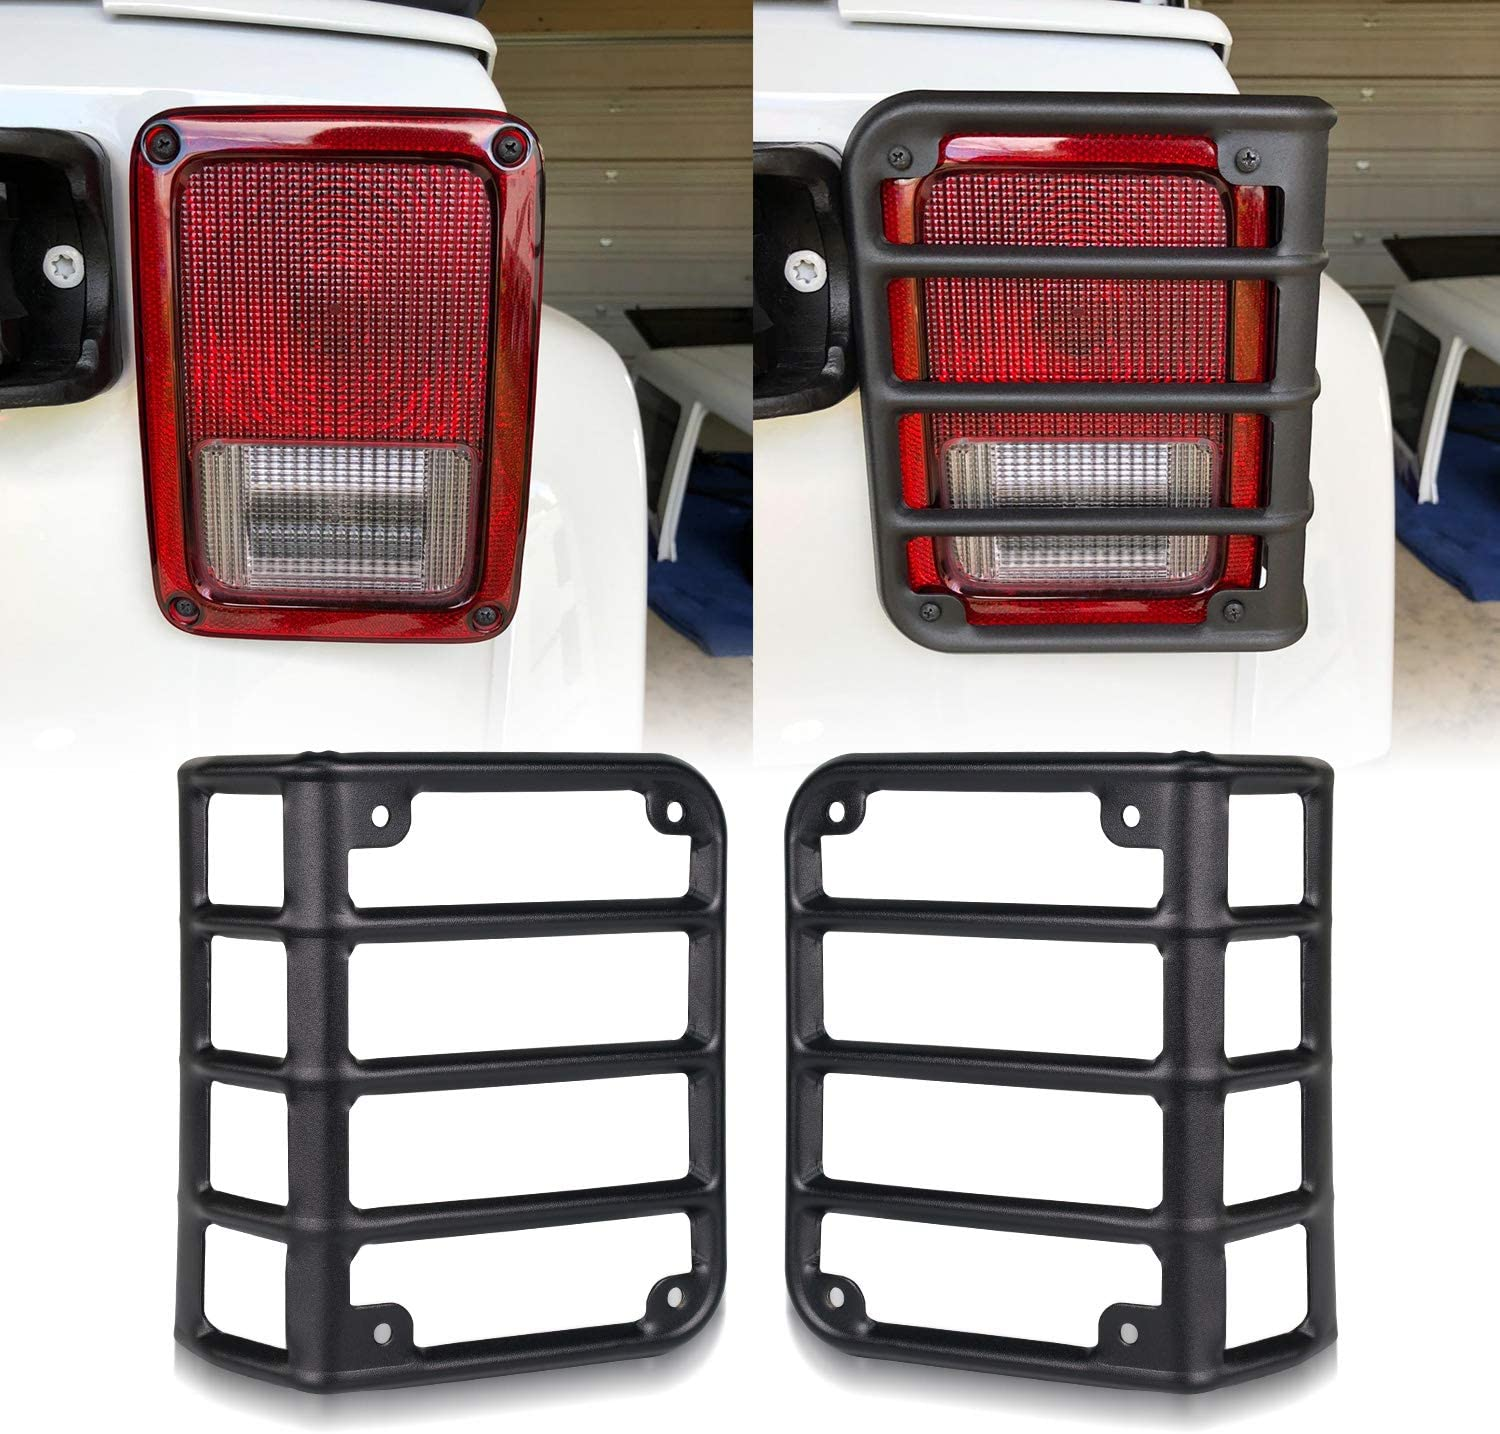 Jeep Wrangler Tail Light QUAKEWORLD Pair Tail Light Covers Guard Stainless Steel for 2007-2018 Jeep Wrangler JK Unlimited Black Automotive Accessories Jeep Rear Tail Light Protectors Guards Cover